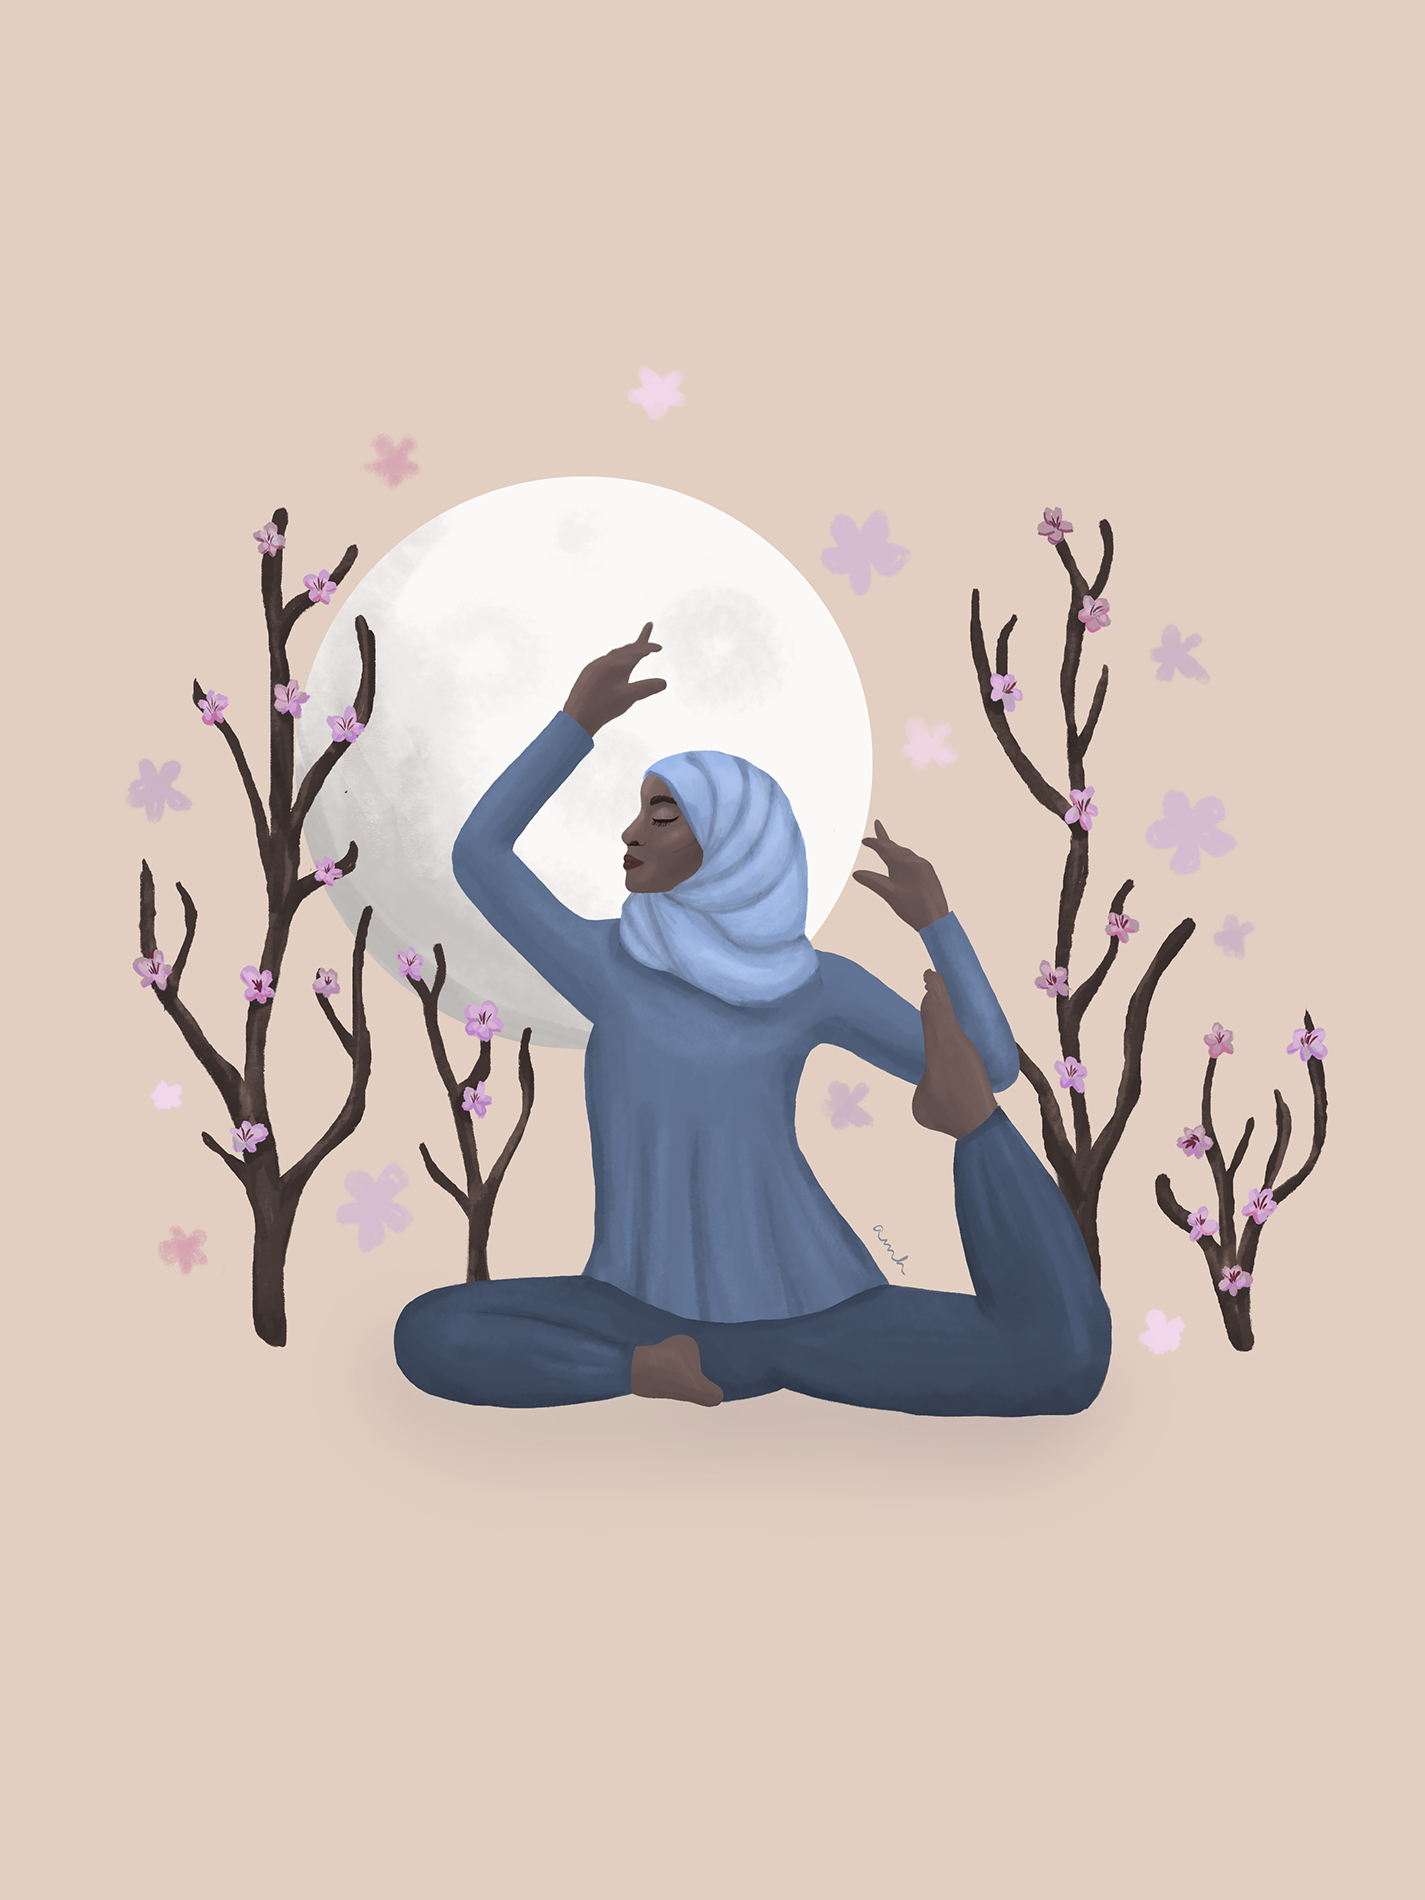 illustration of a hijabi woman in pigeon pose doing yoga